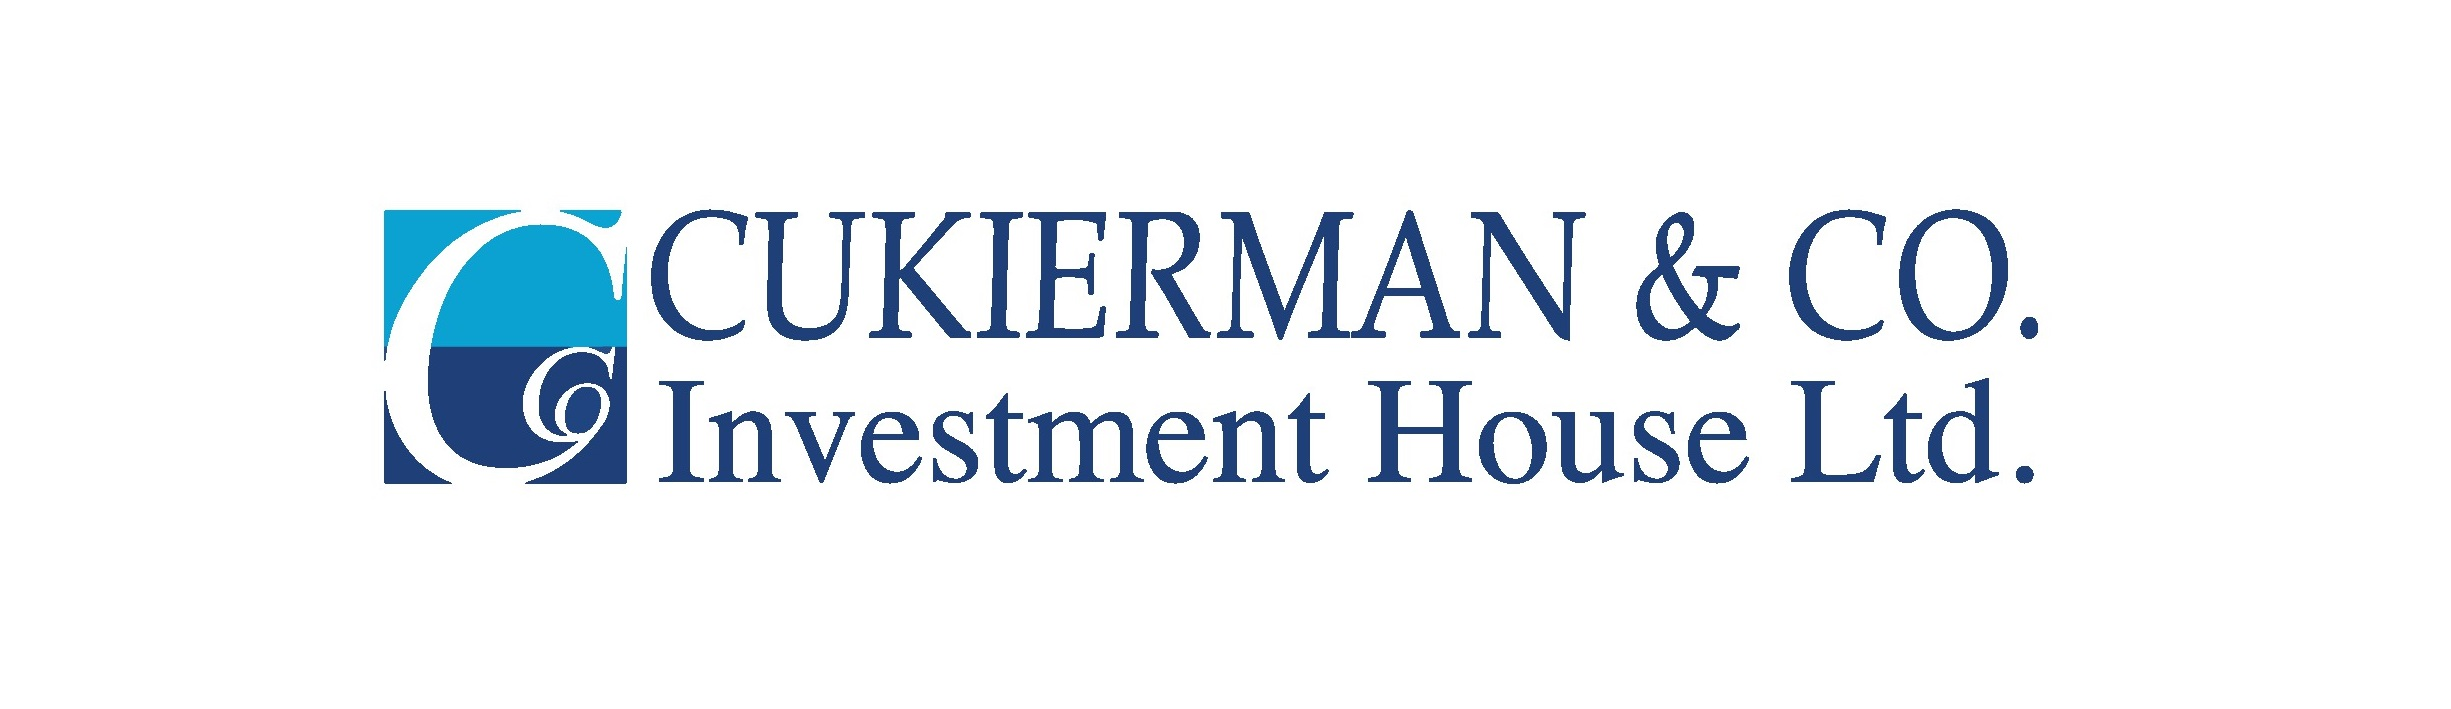 Cukierman Investments House